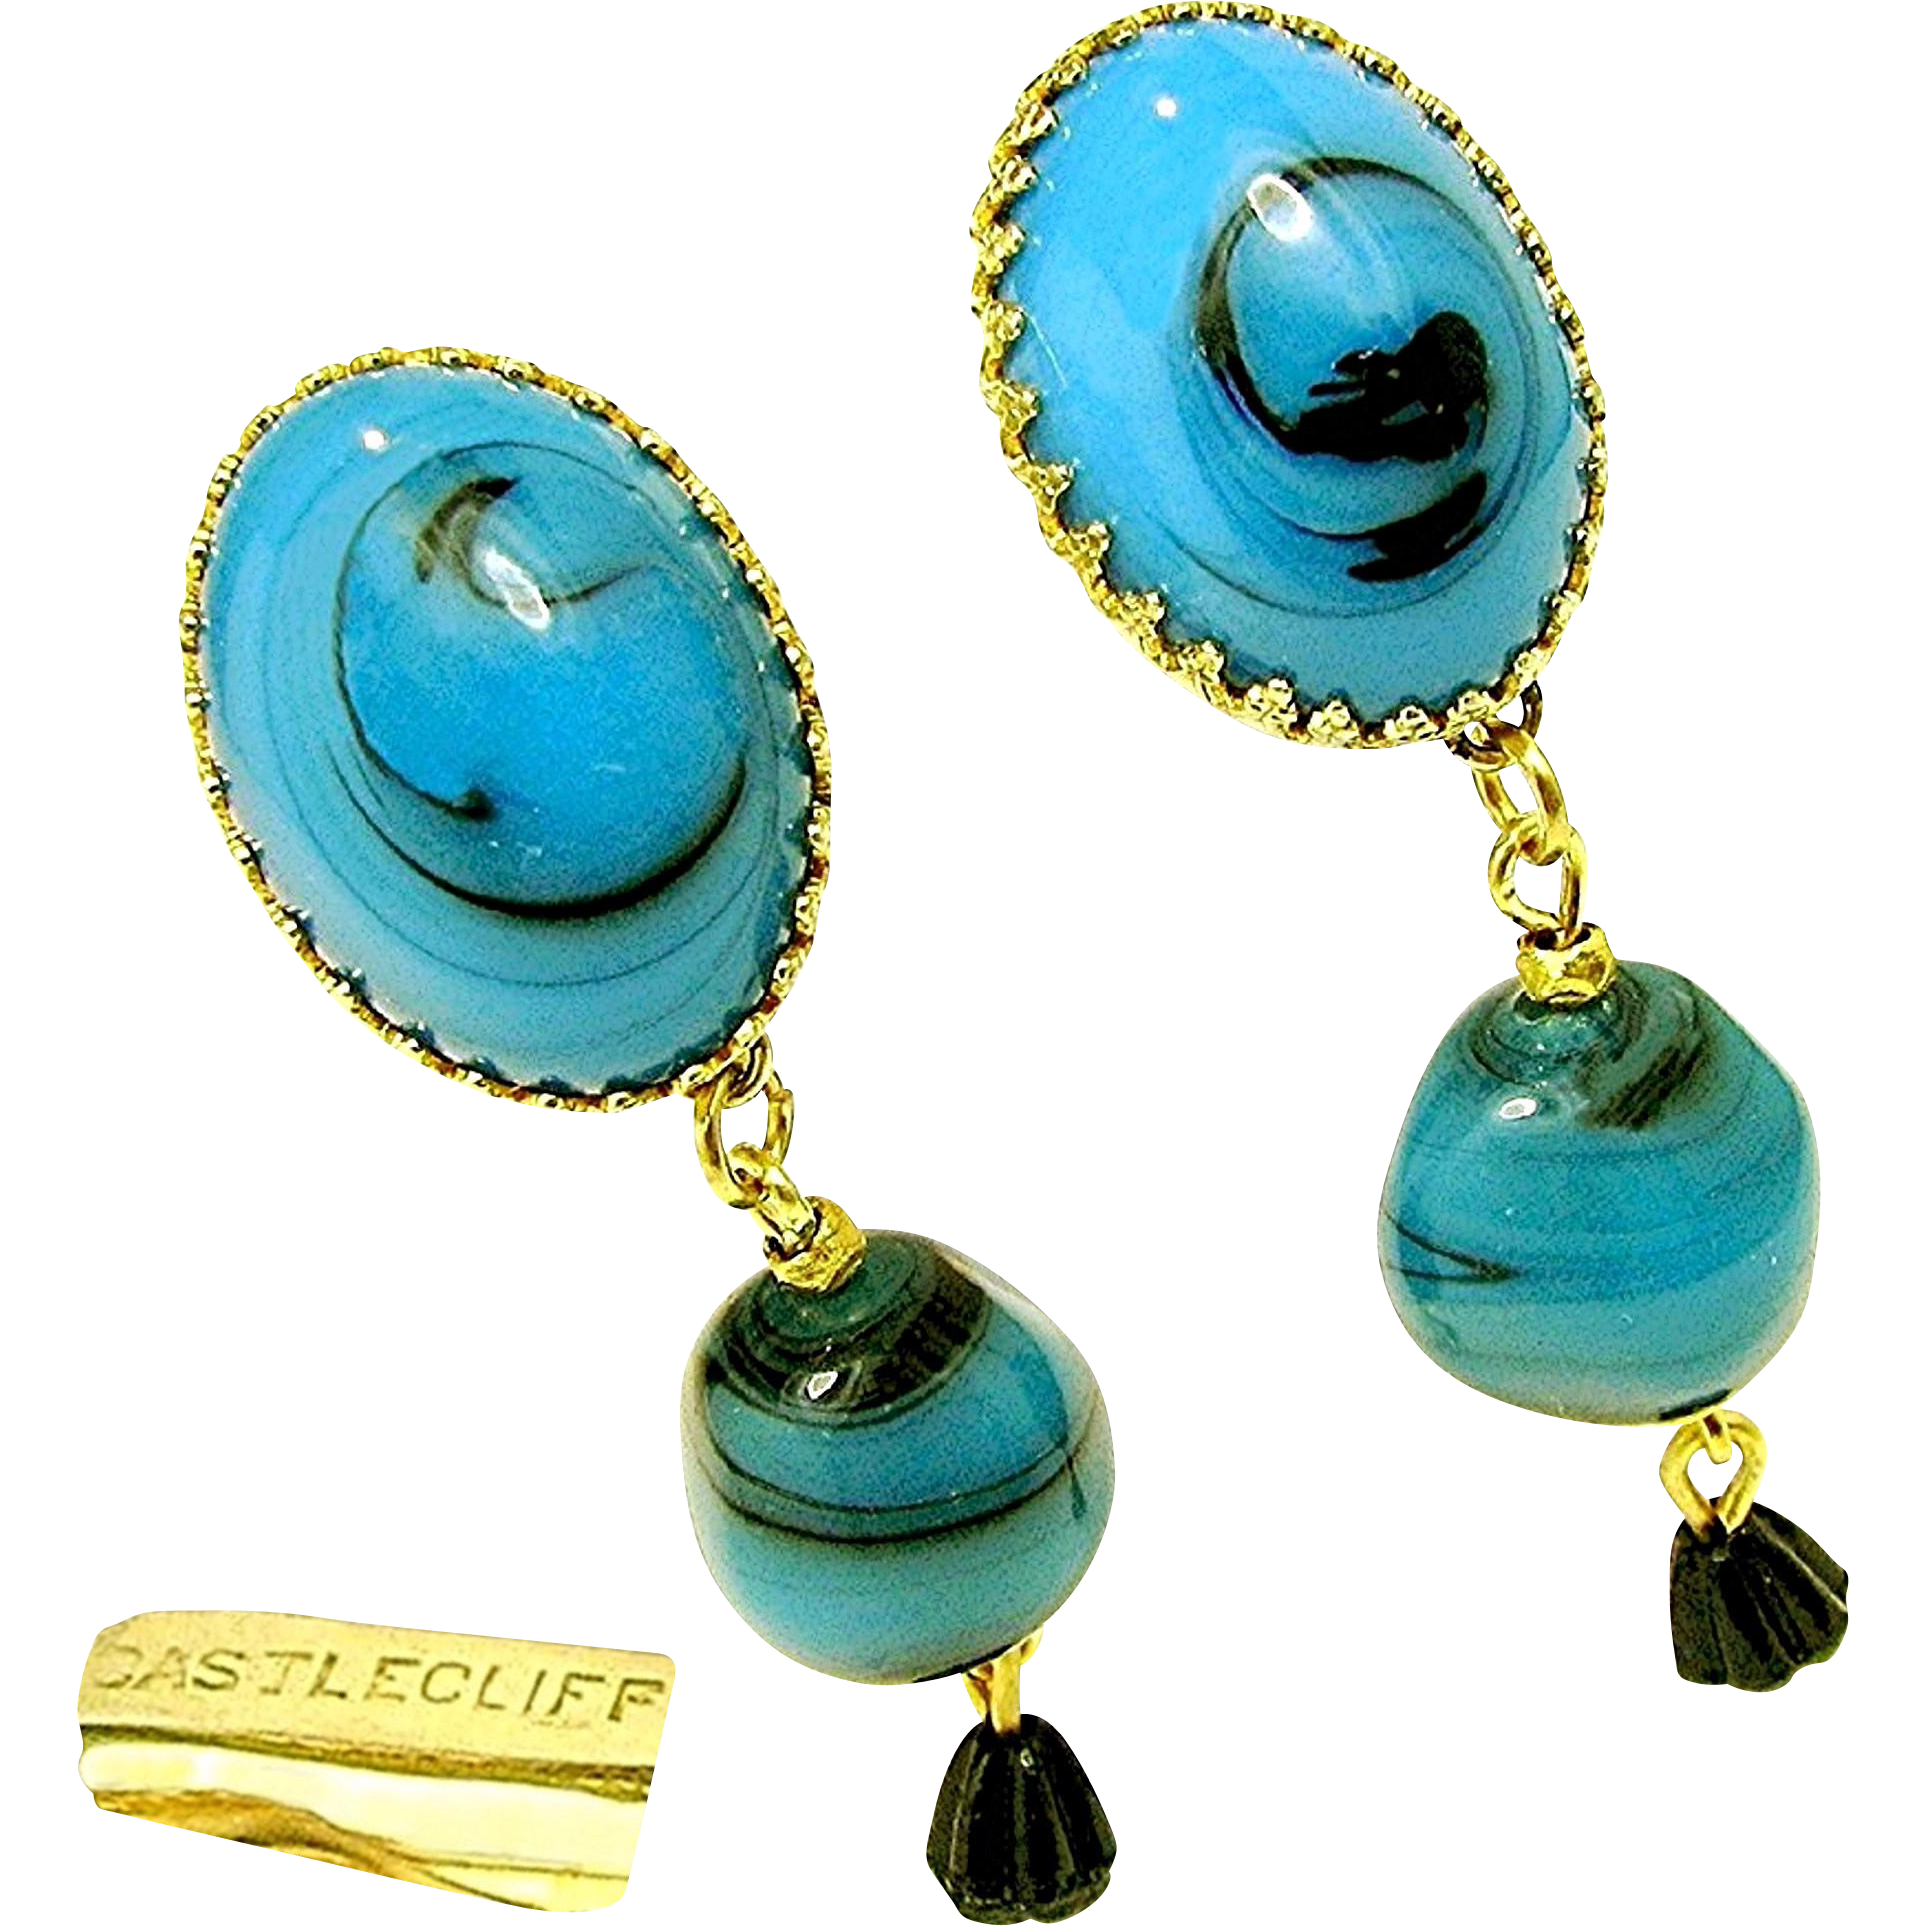 Vintage CASTLECLIFF Blue Art Glass Dangle Earrings w/ Black Drops